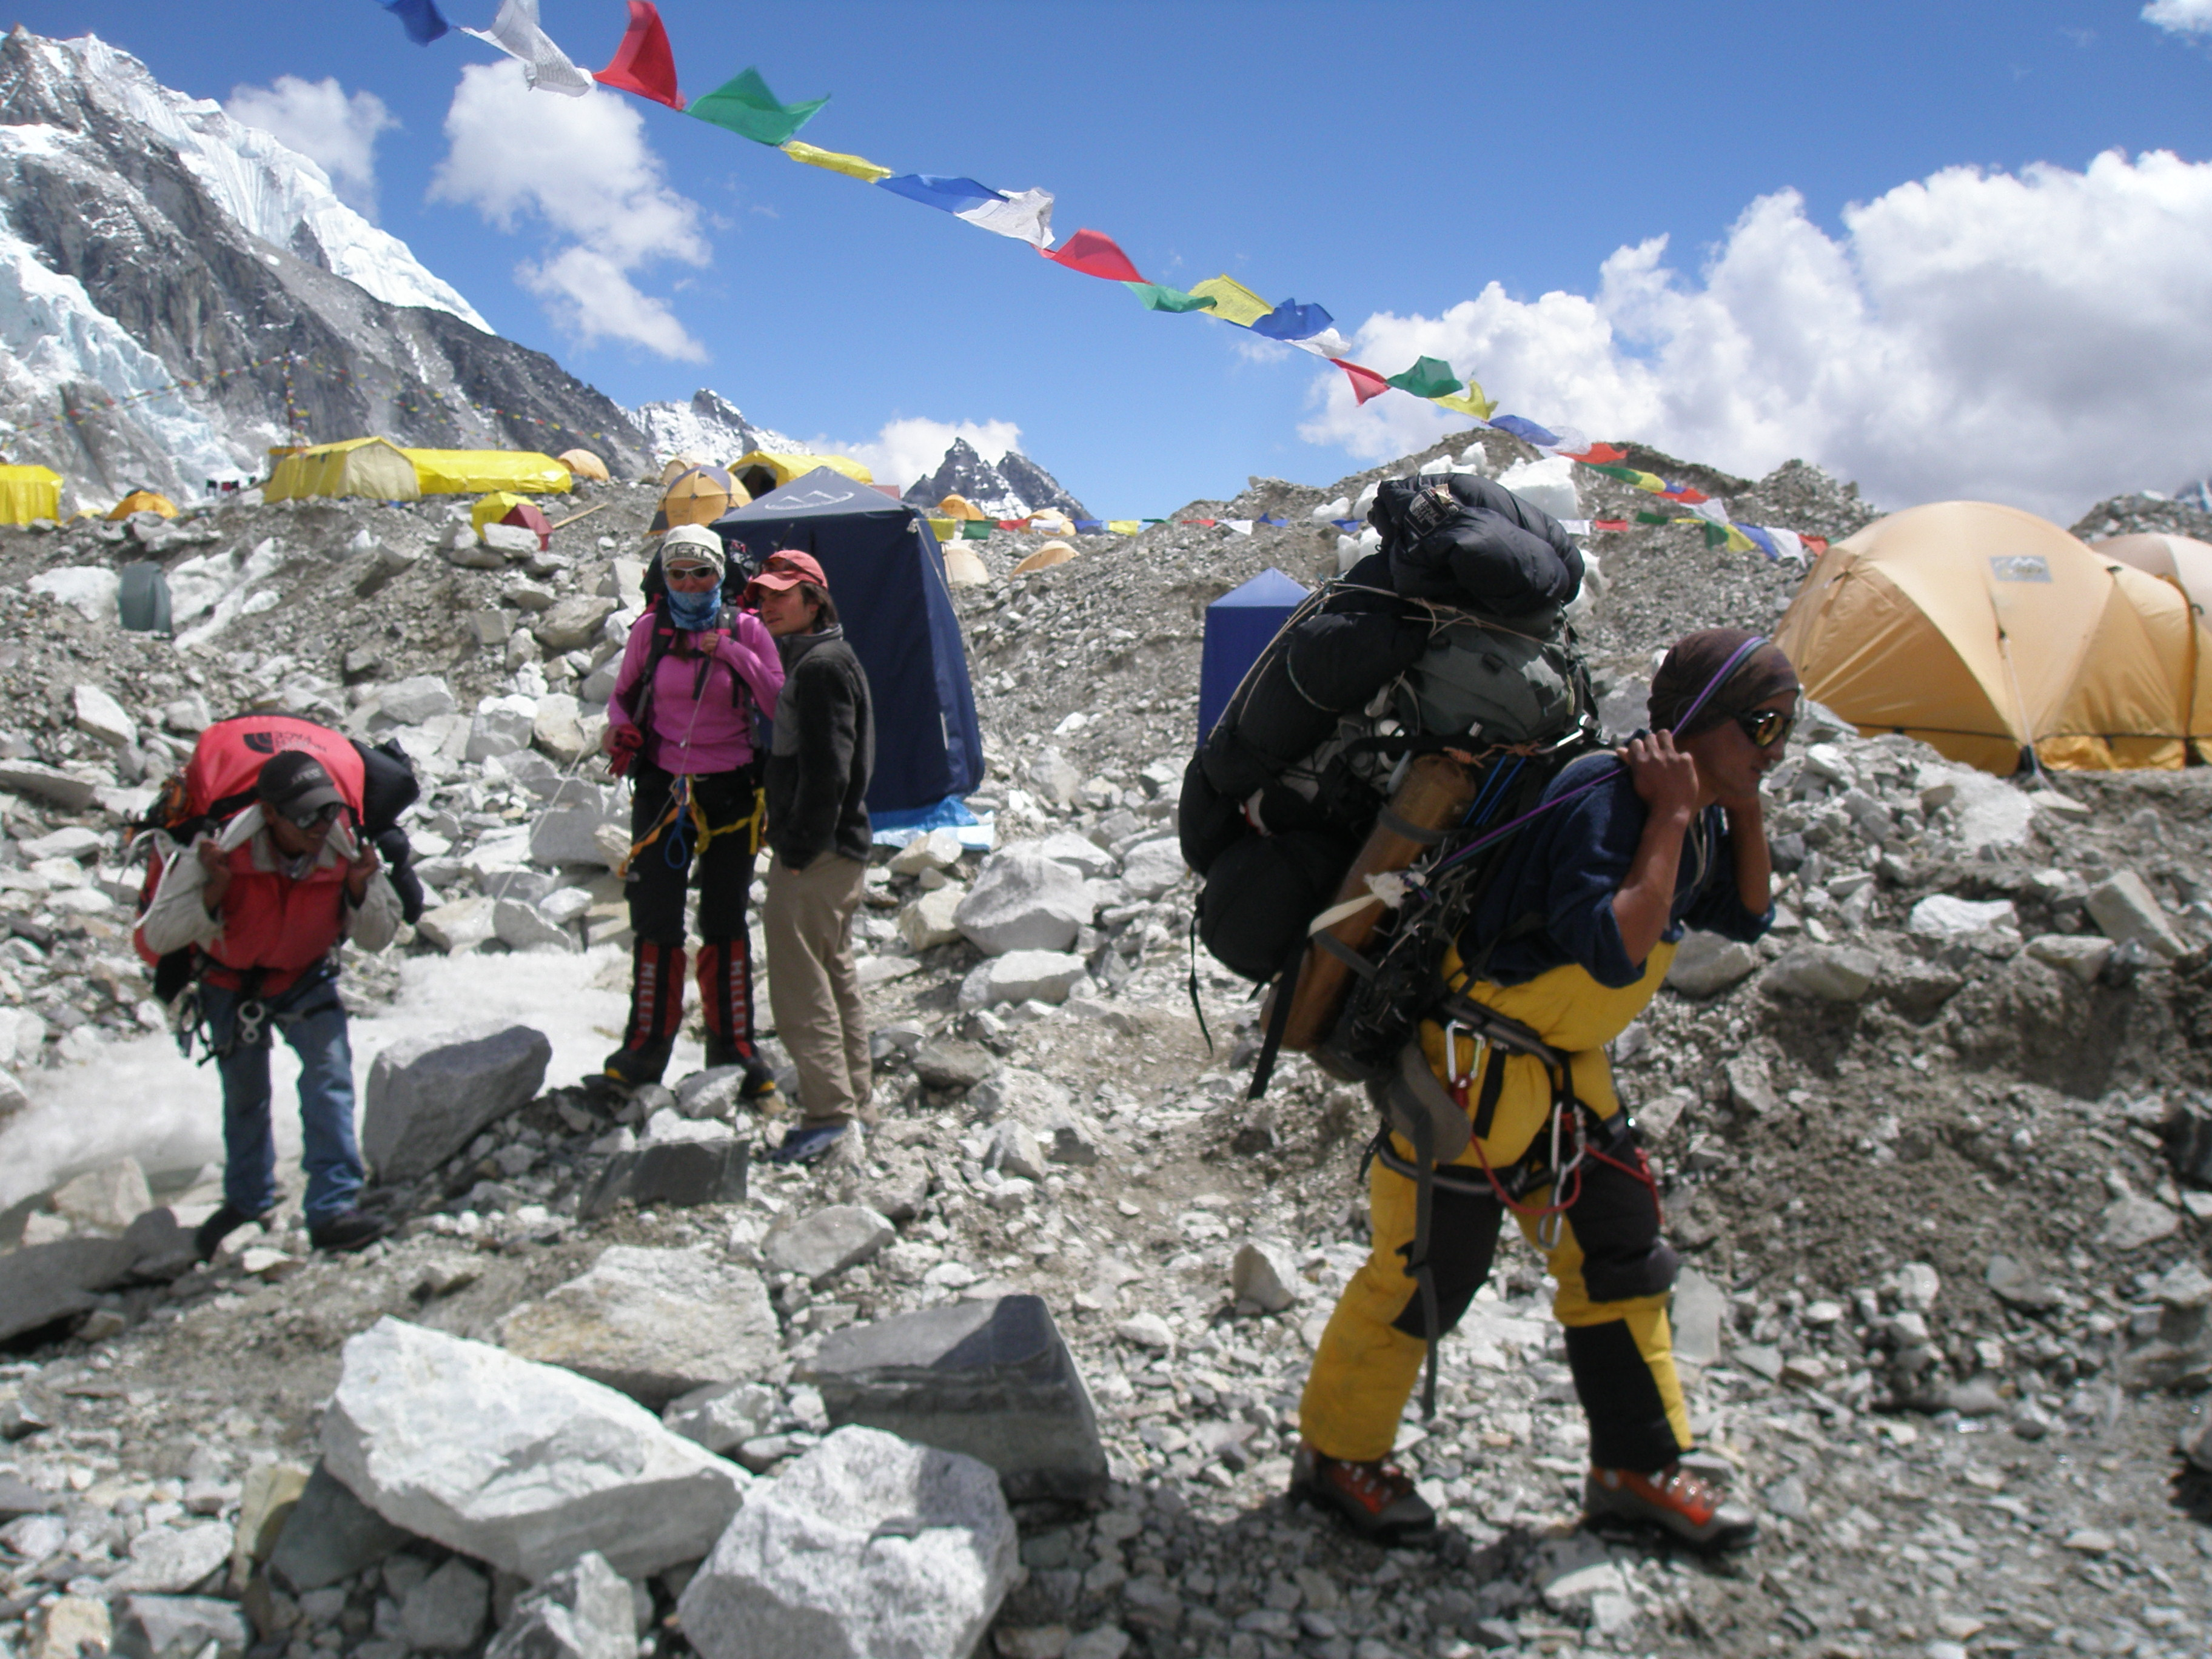 sherpas of nepal Nepal sherpa people page is for those looking information about sherpas and climbing records.